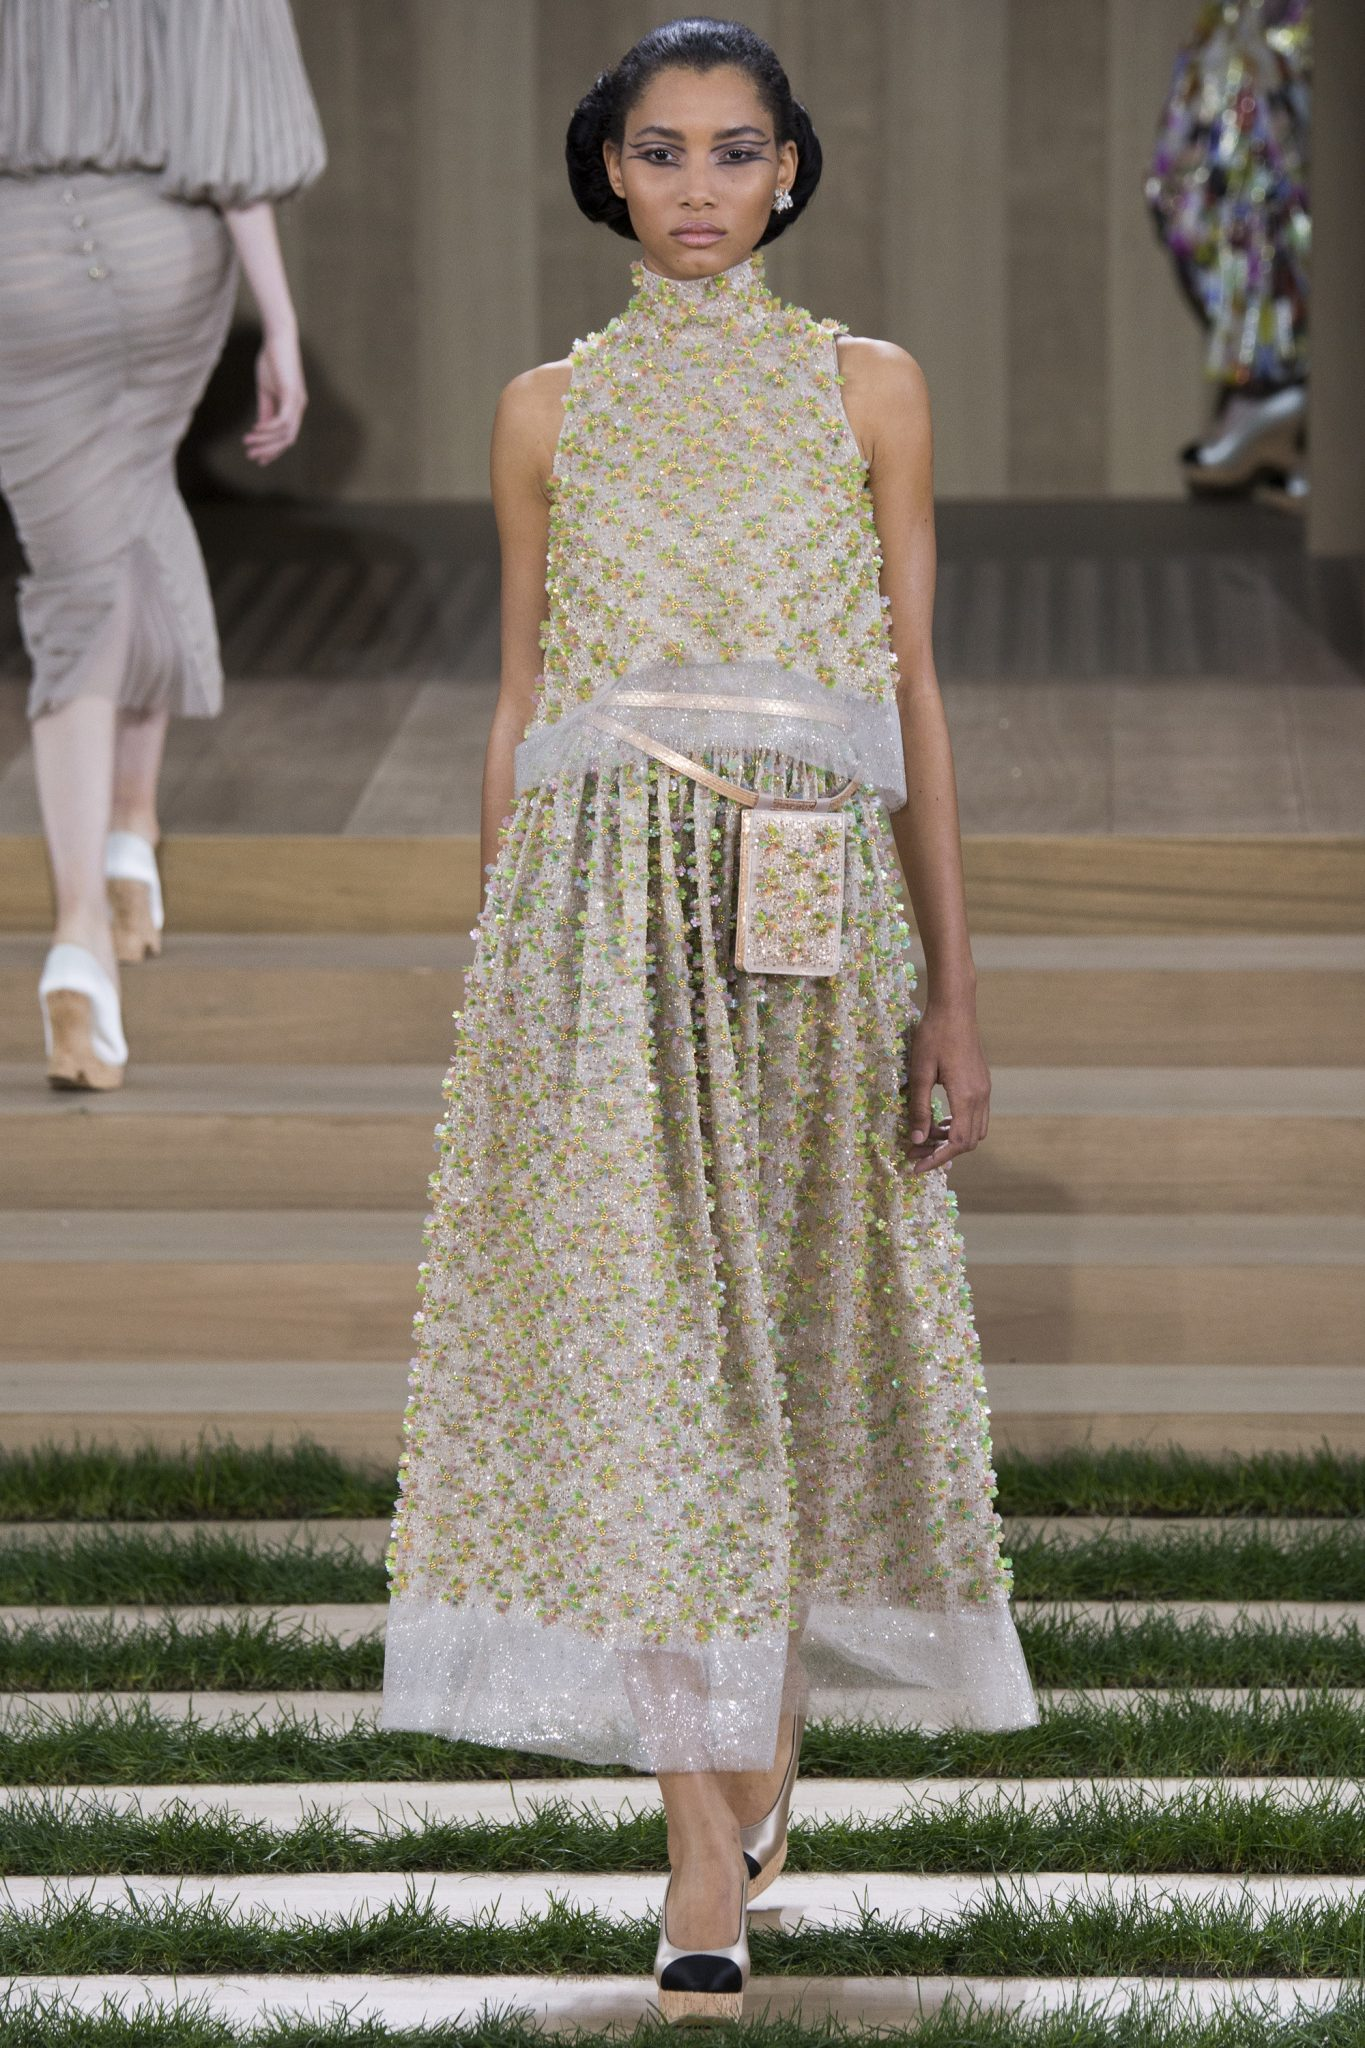 Best Looks: Chanel Spring/Summer 2016 Haute Couture